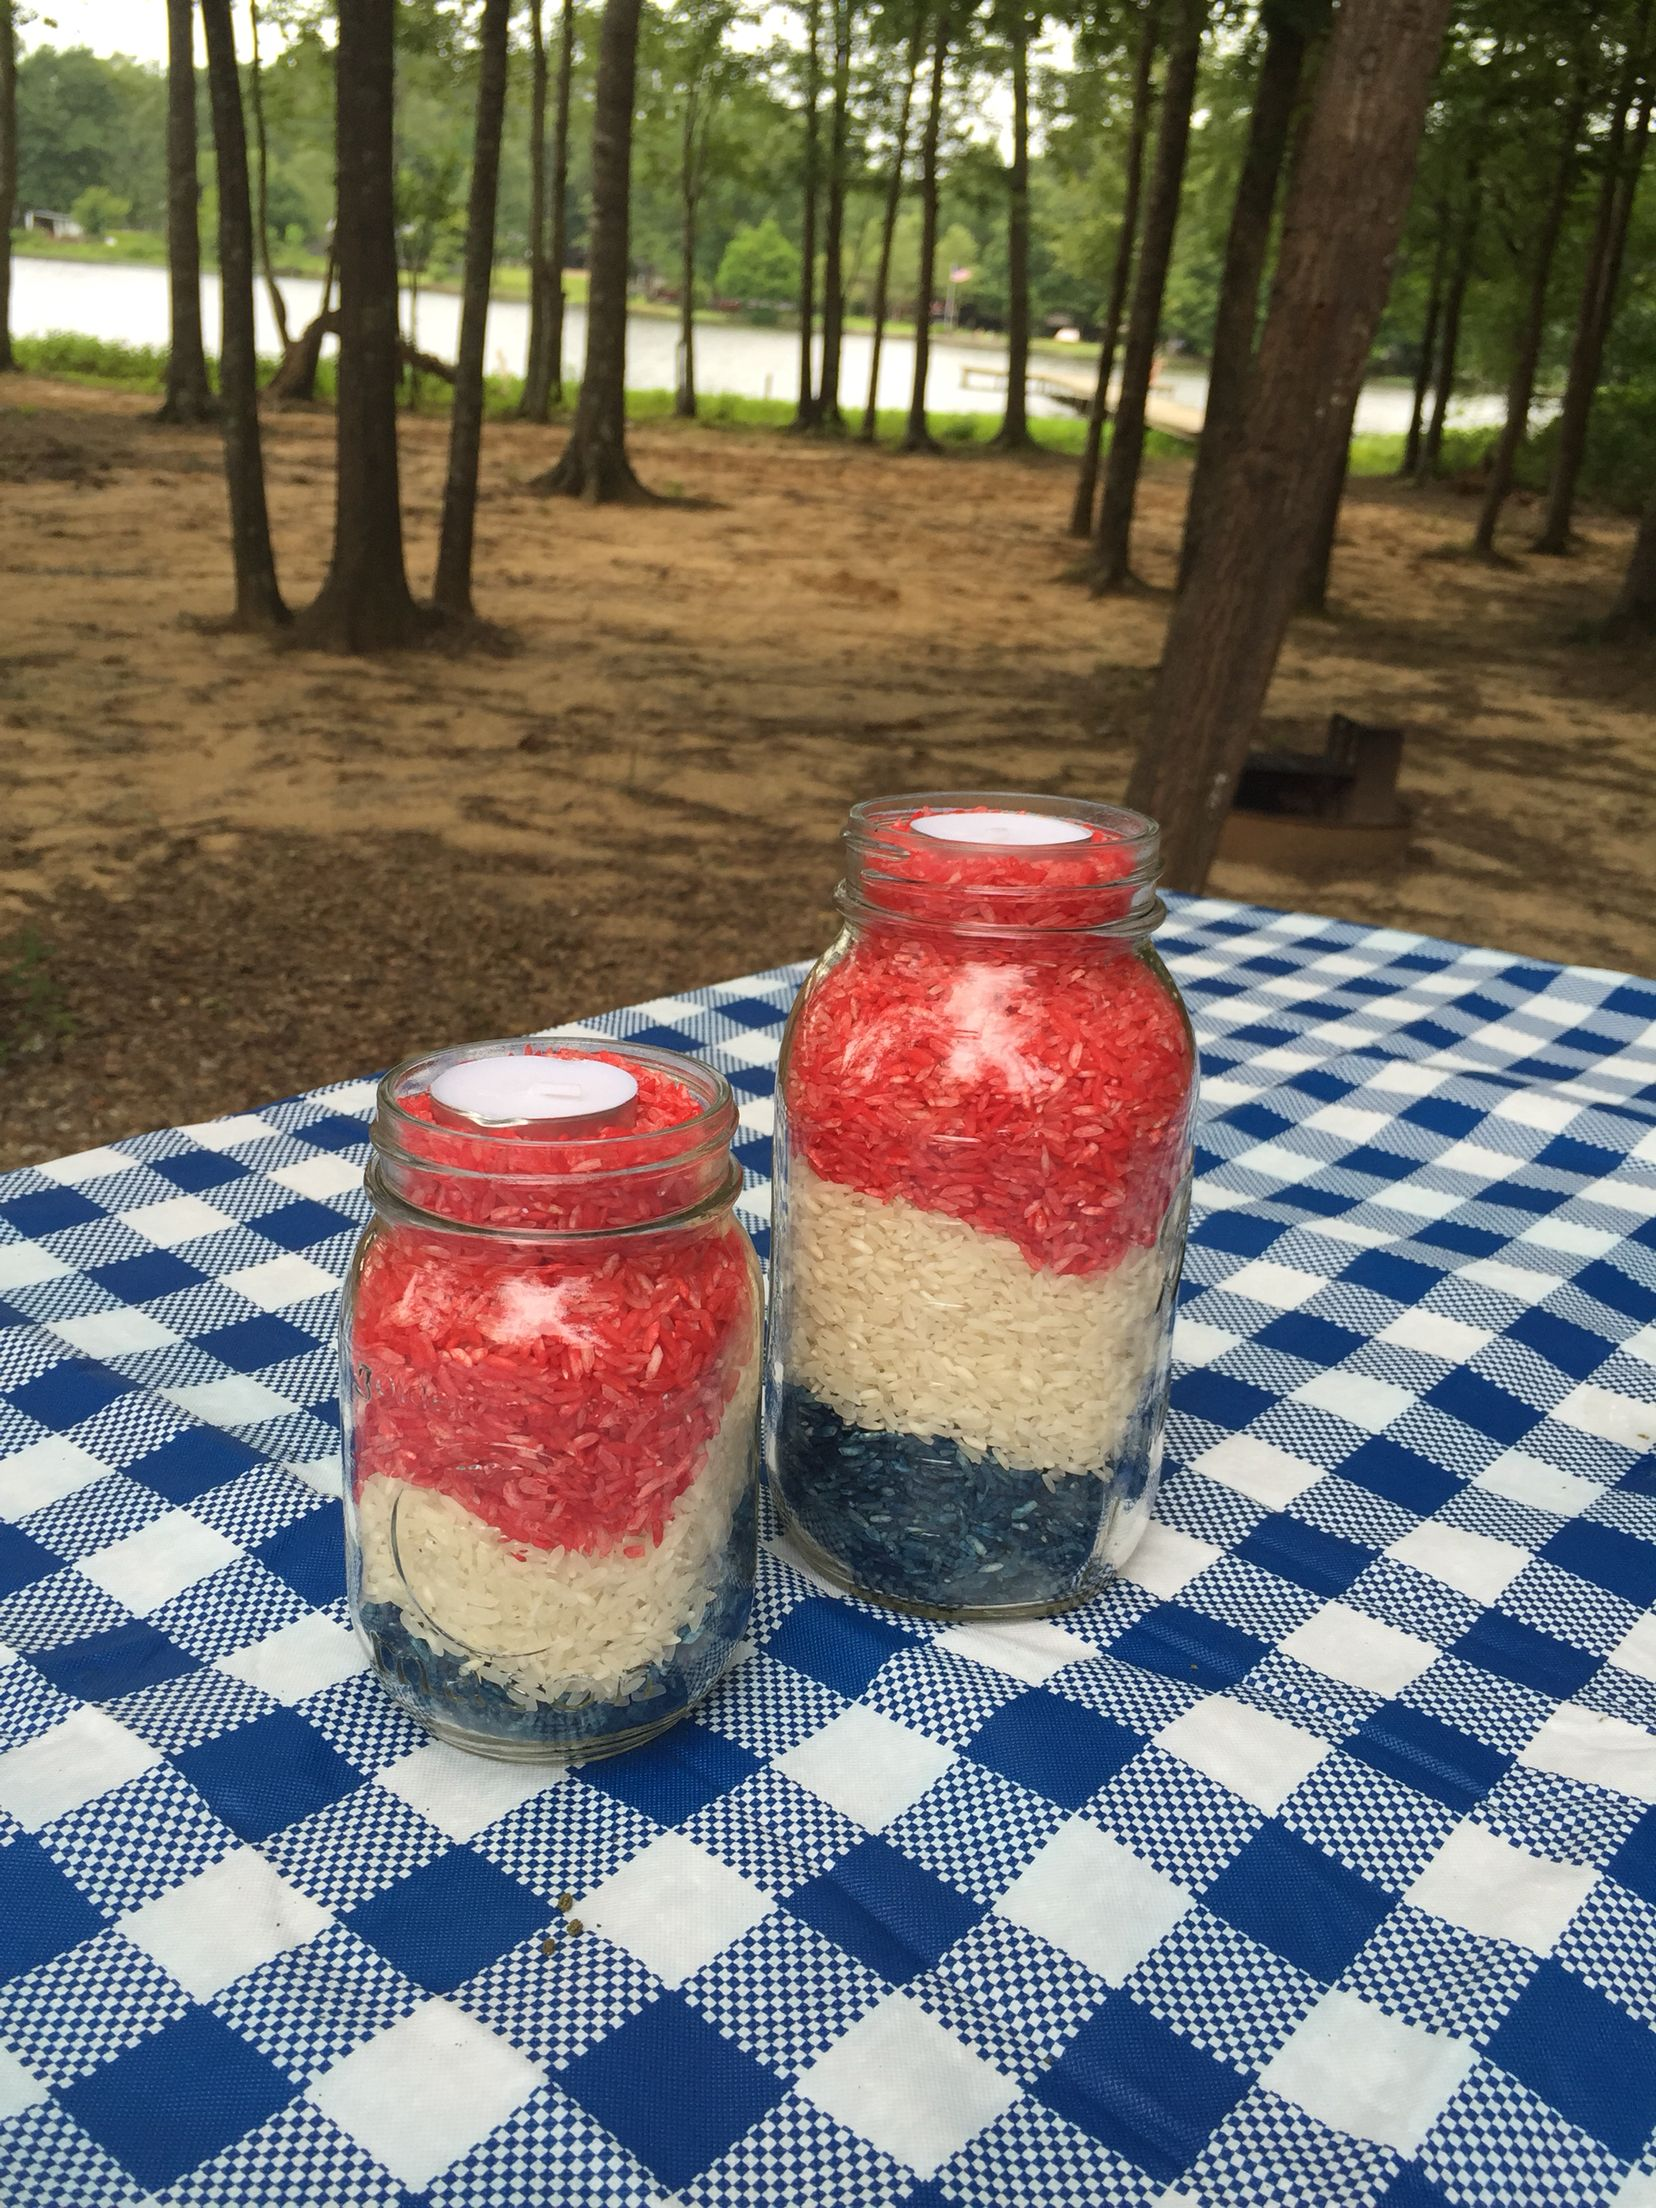 Rice candle holders with tealights. Ole Miss. July 4